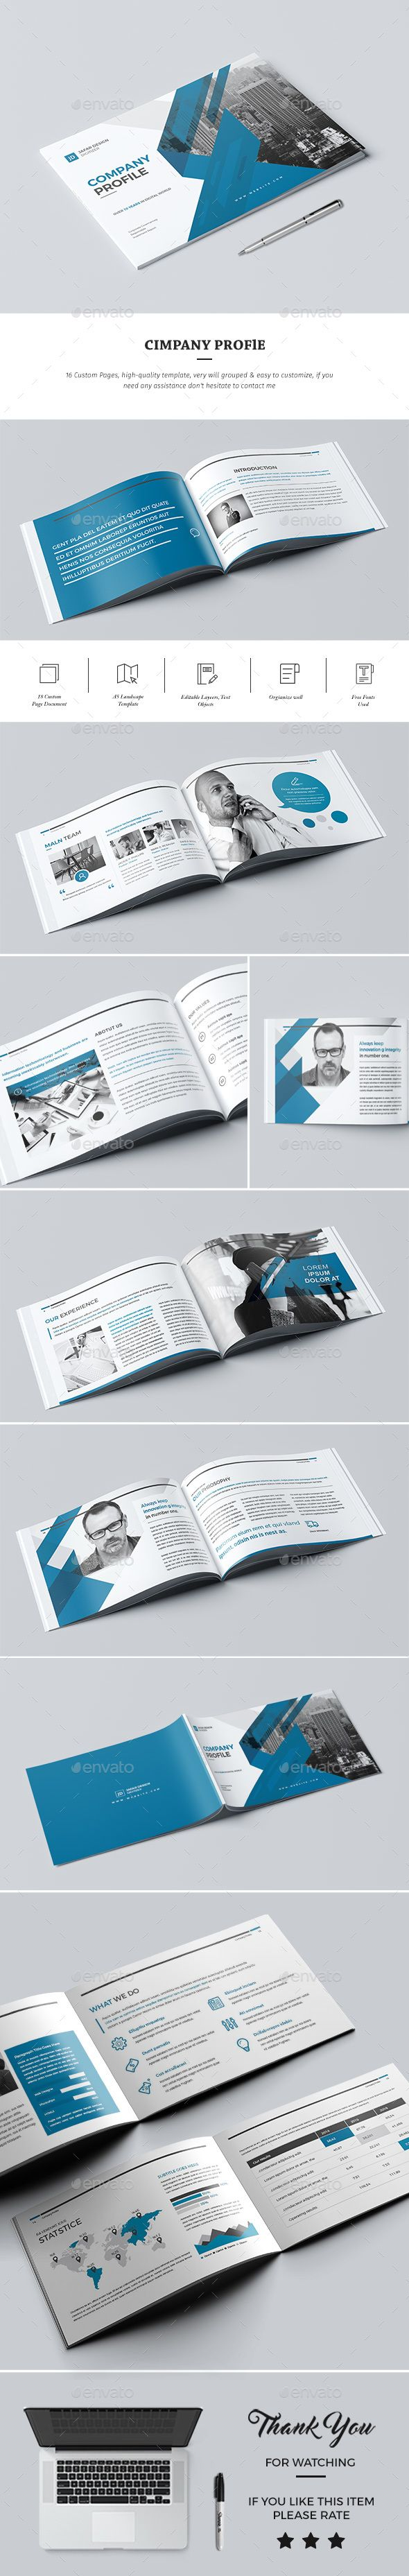 #Company #Profile 2017 - Corporate #Brochures Download here: https://graphicriver.net/item/company-profile-2017/19748458?ref=alena994